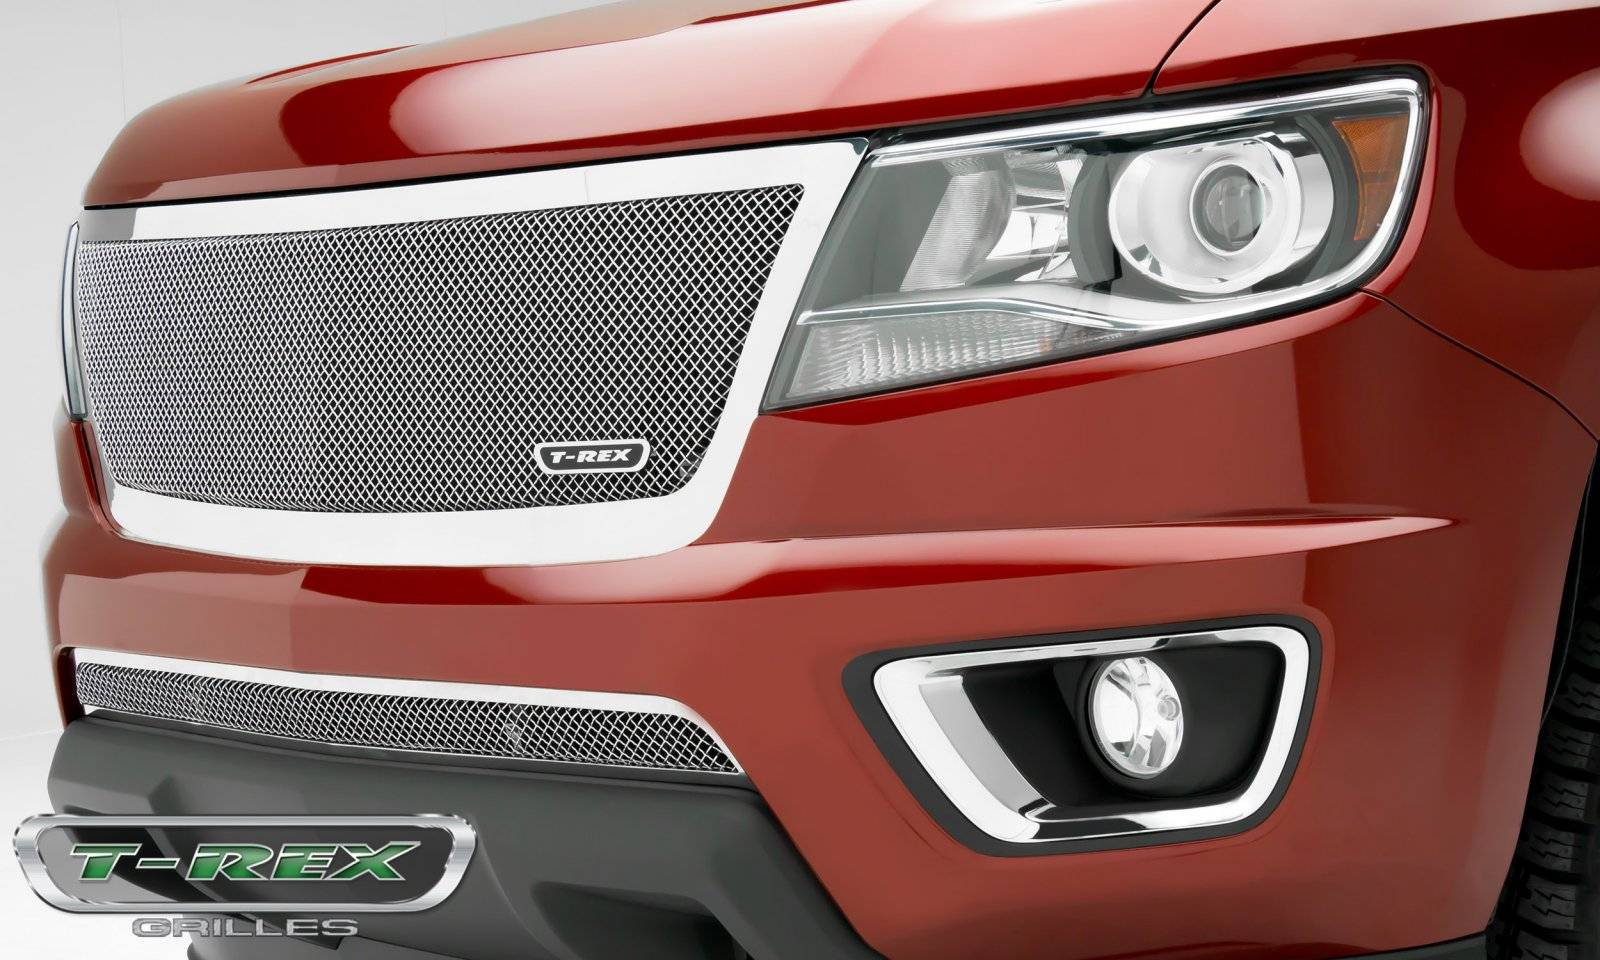 T-REX Grilles - Chevrolet Colorado - Upper Class Series - Full Opening - Replacement Main Grille with Polished Stainless Steel Finish - Pt # 54267